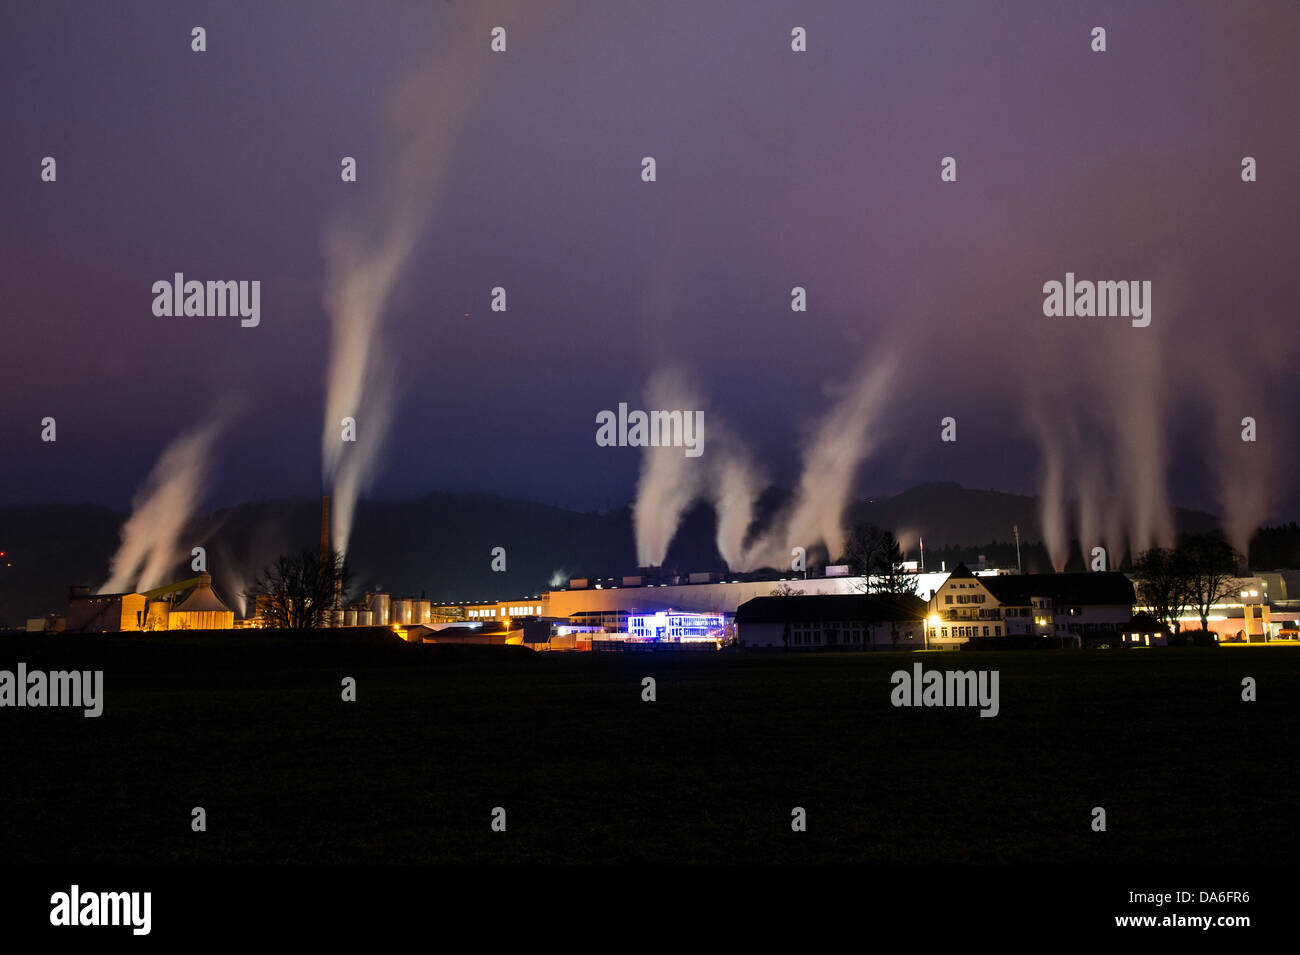 Factory, smoke, chimney, exhaust gases, production, at night, light, paper factory, ecology, CO2, industry - Stock Image